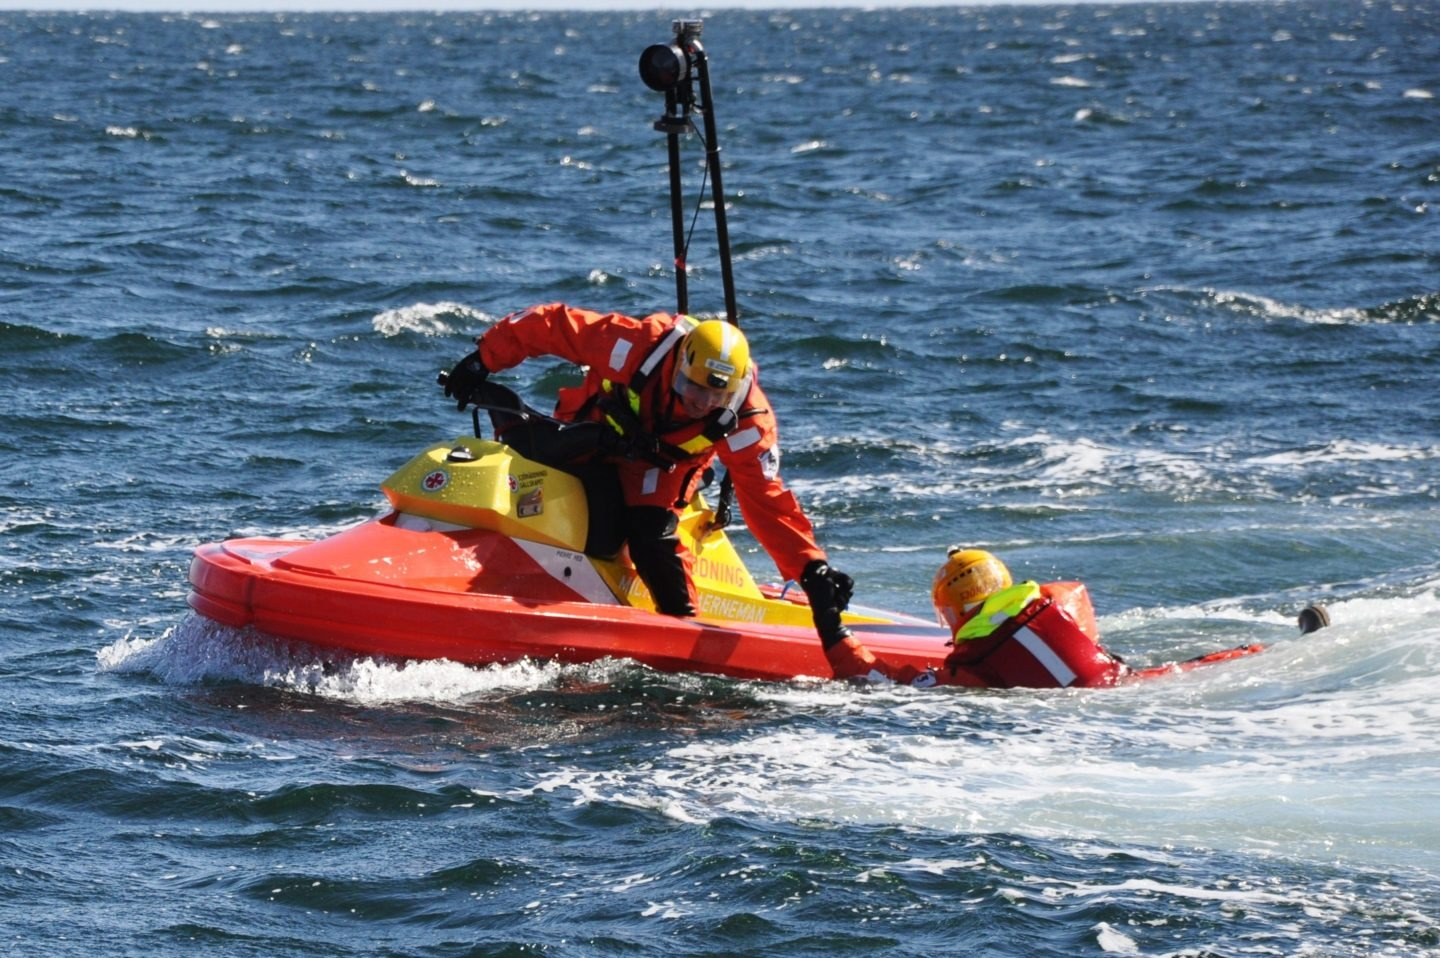 Swedish Sea Rescue Society rescuing Casualty in distress.